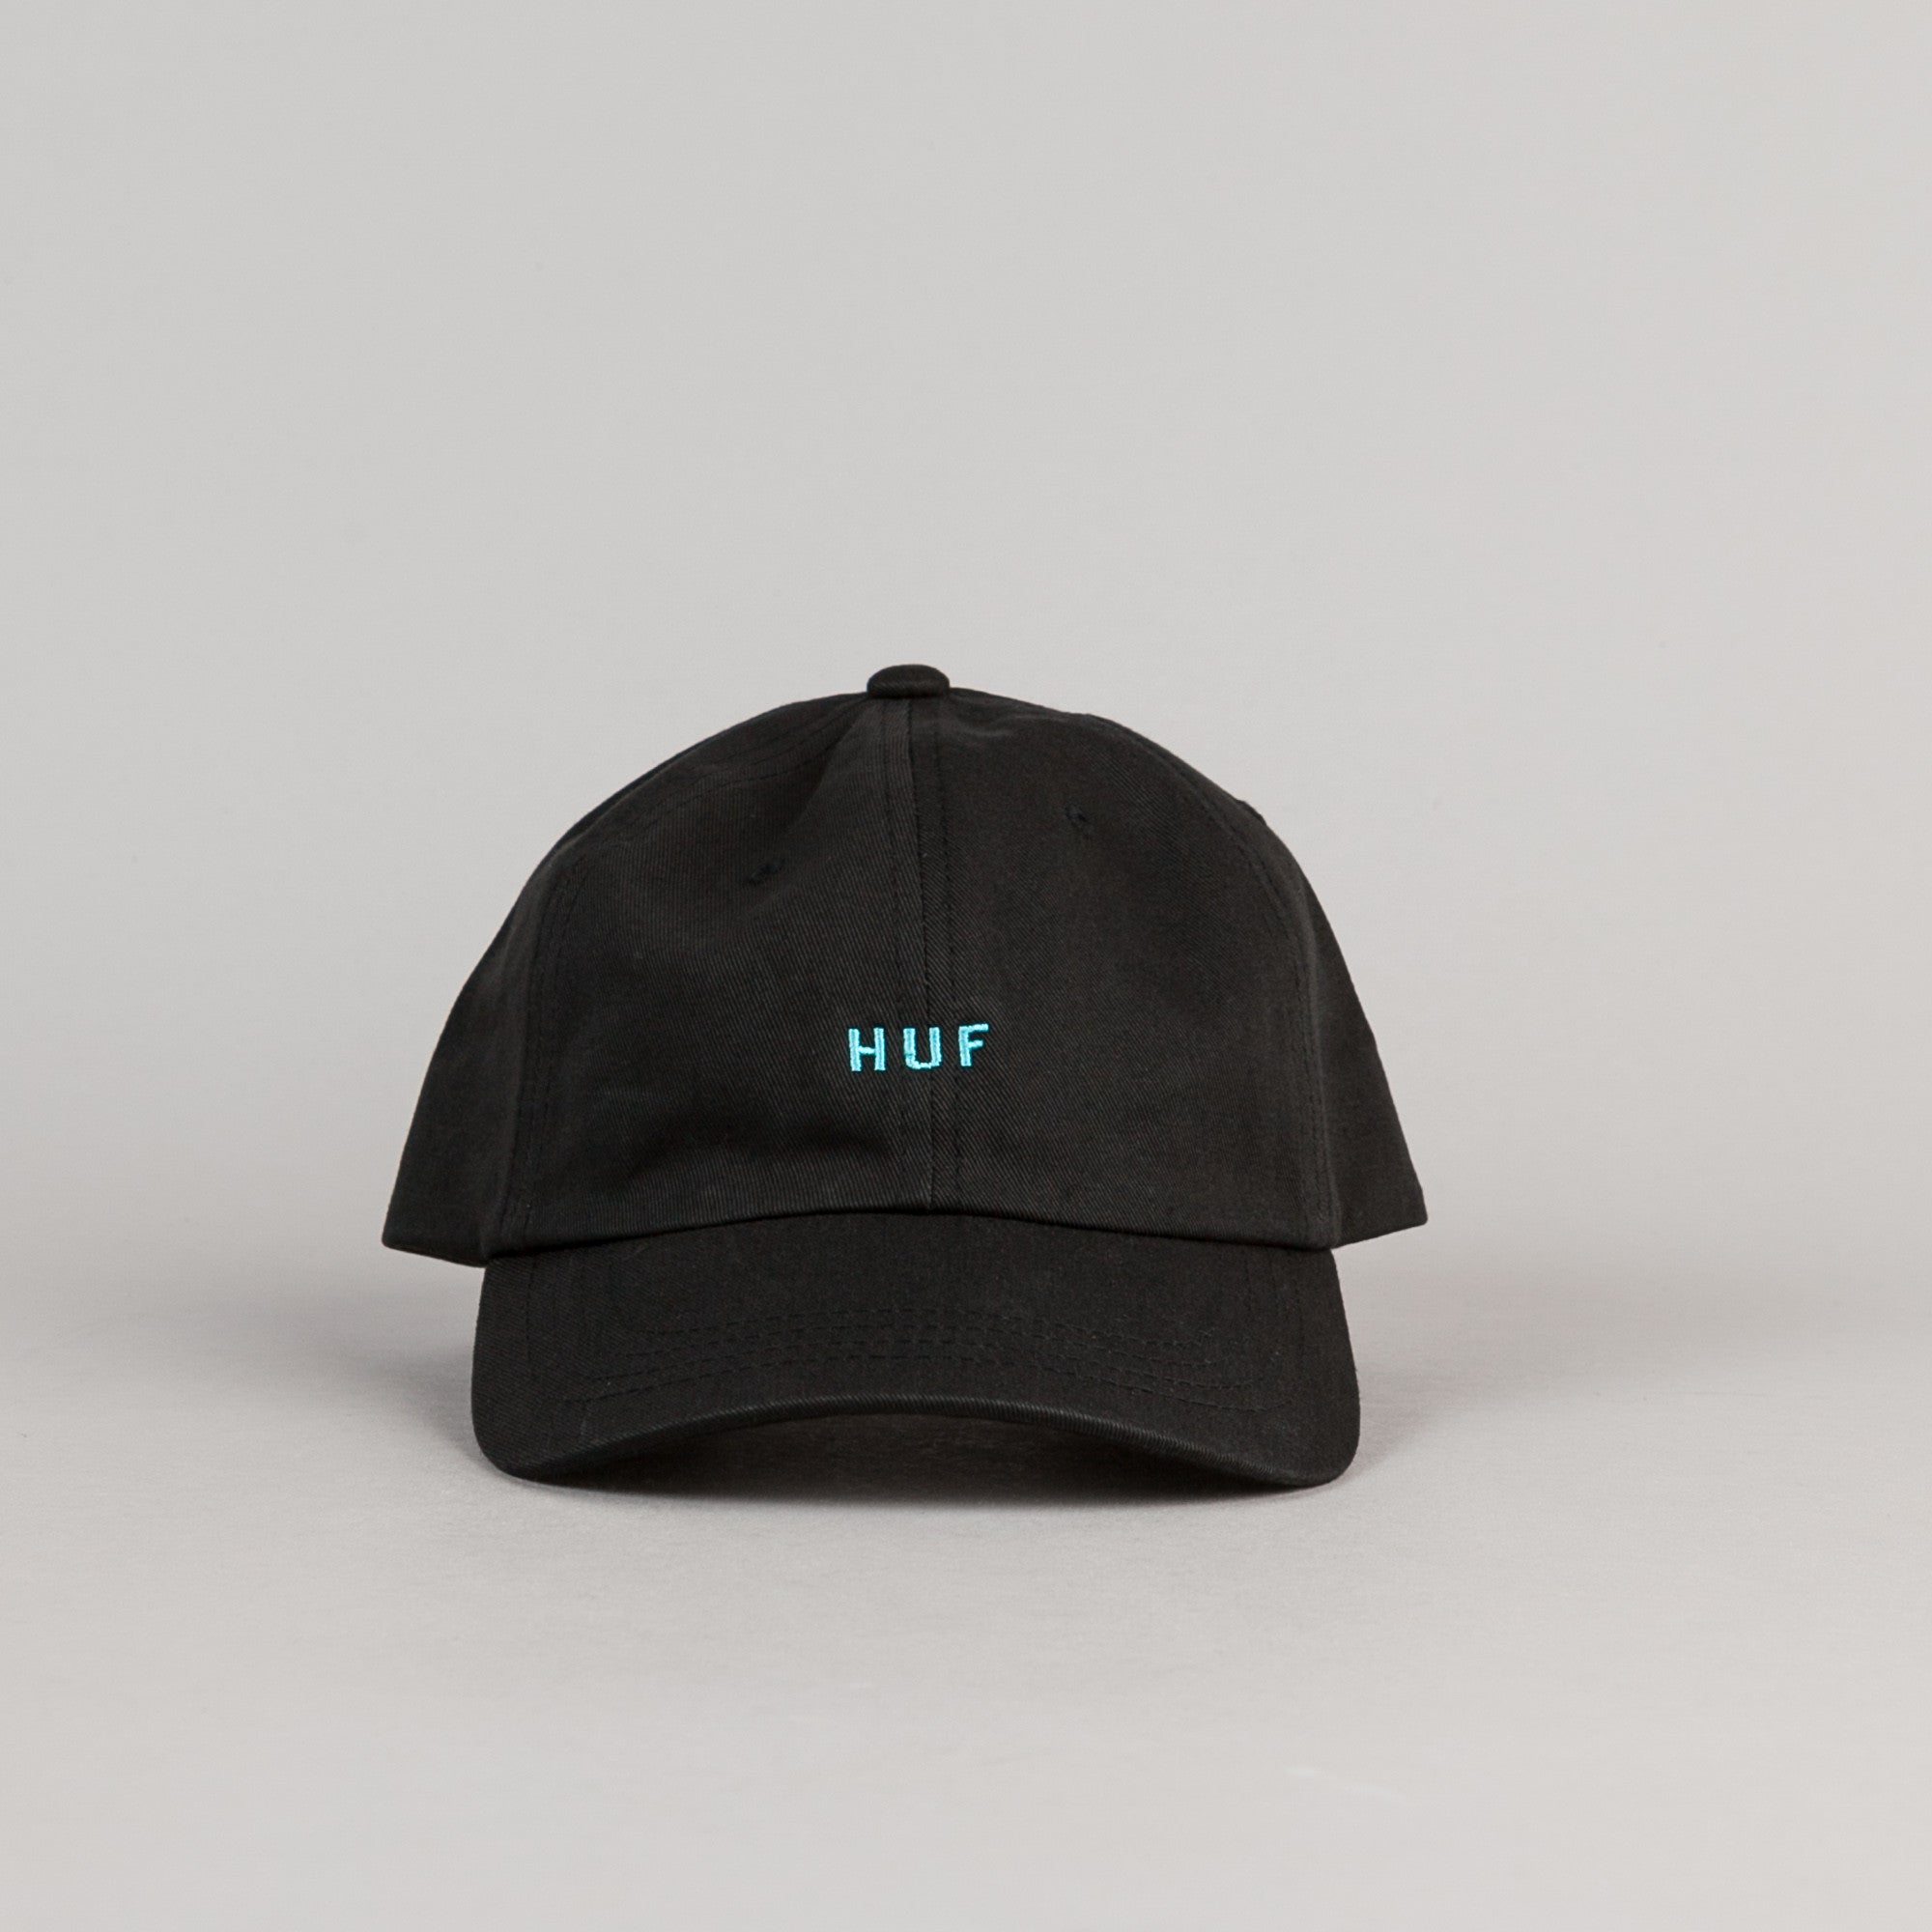 HUF Original Logo Dad Cap - Black